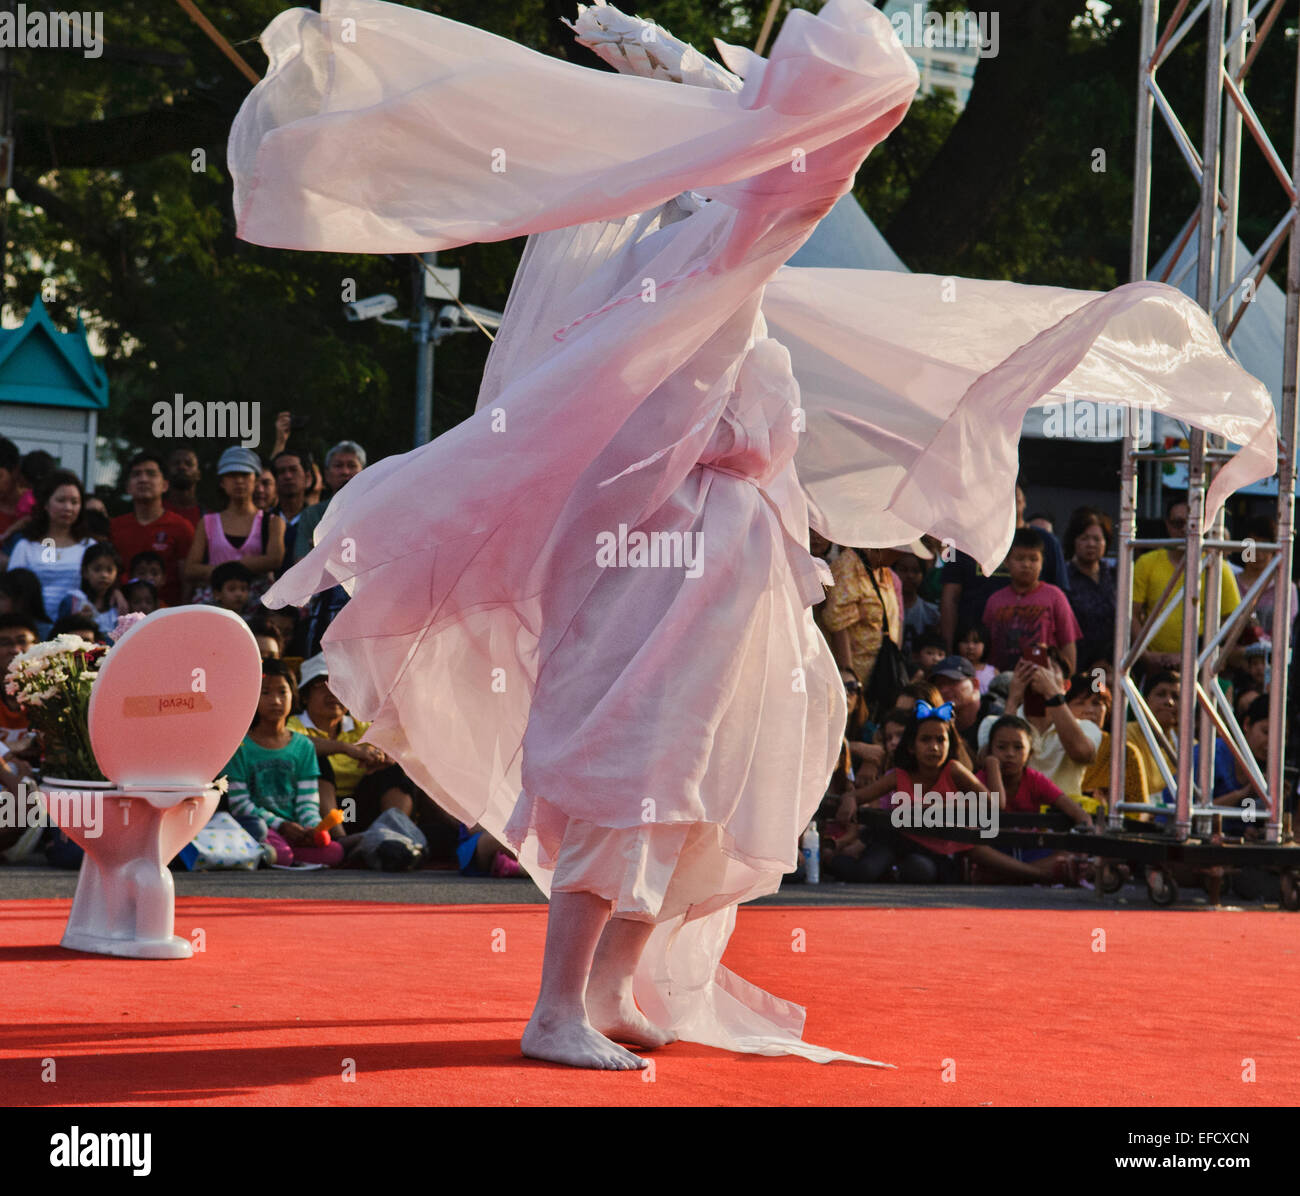 Avant Garde Butoh performer, Dance of Darkness in Bangkok, Thailand - Stock Image